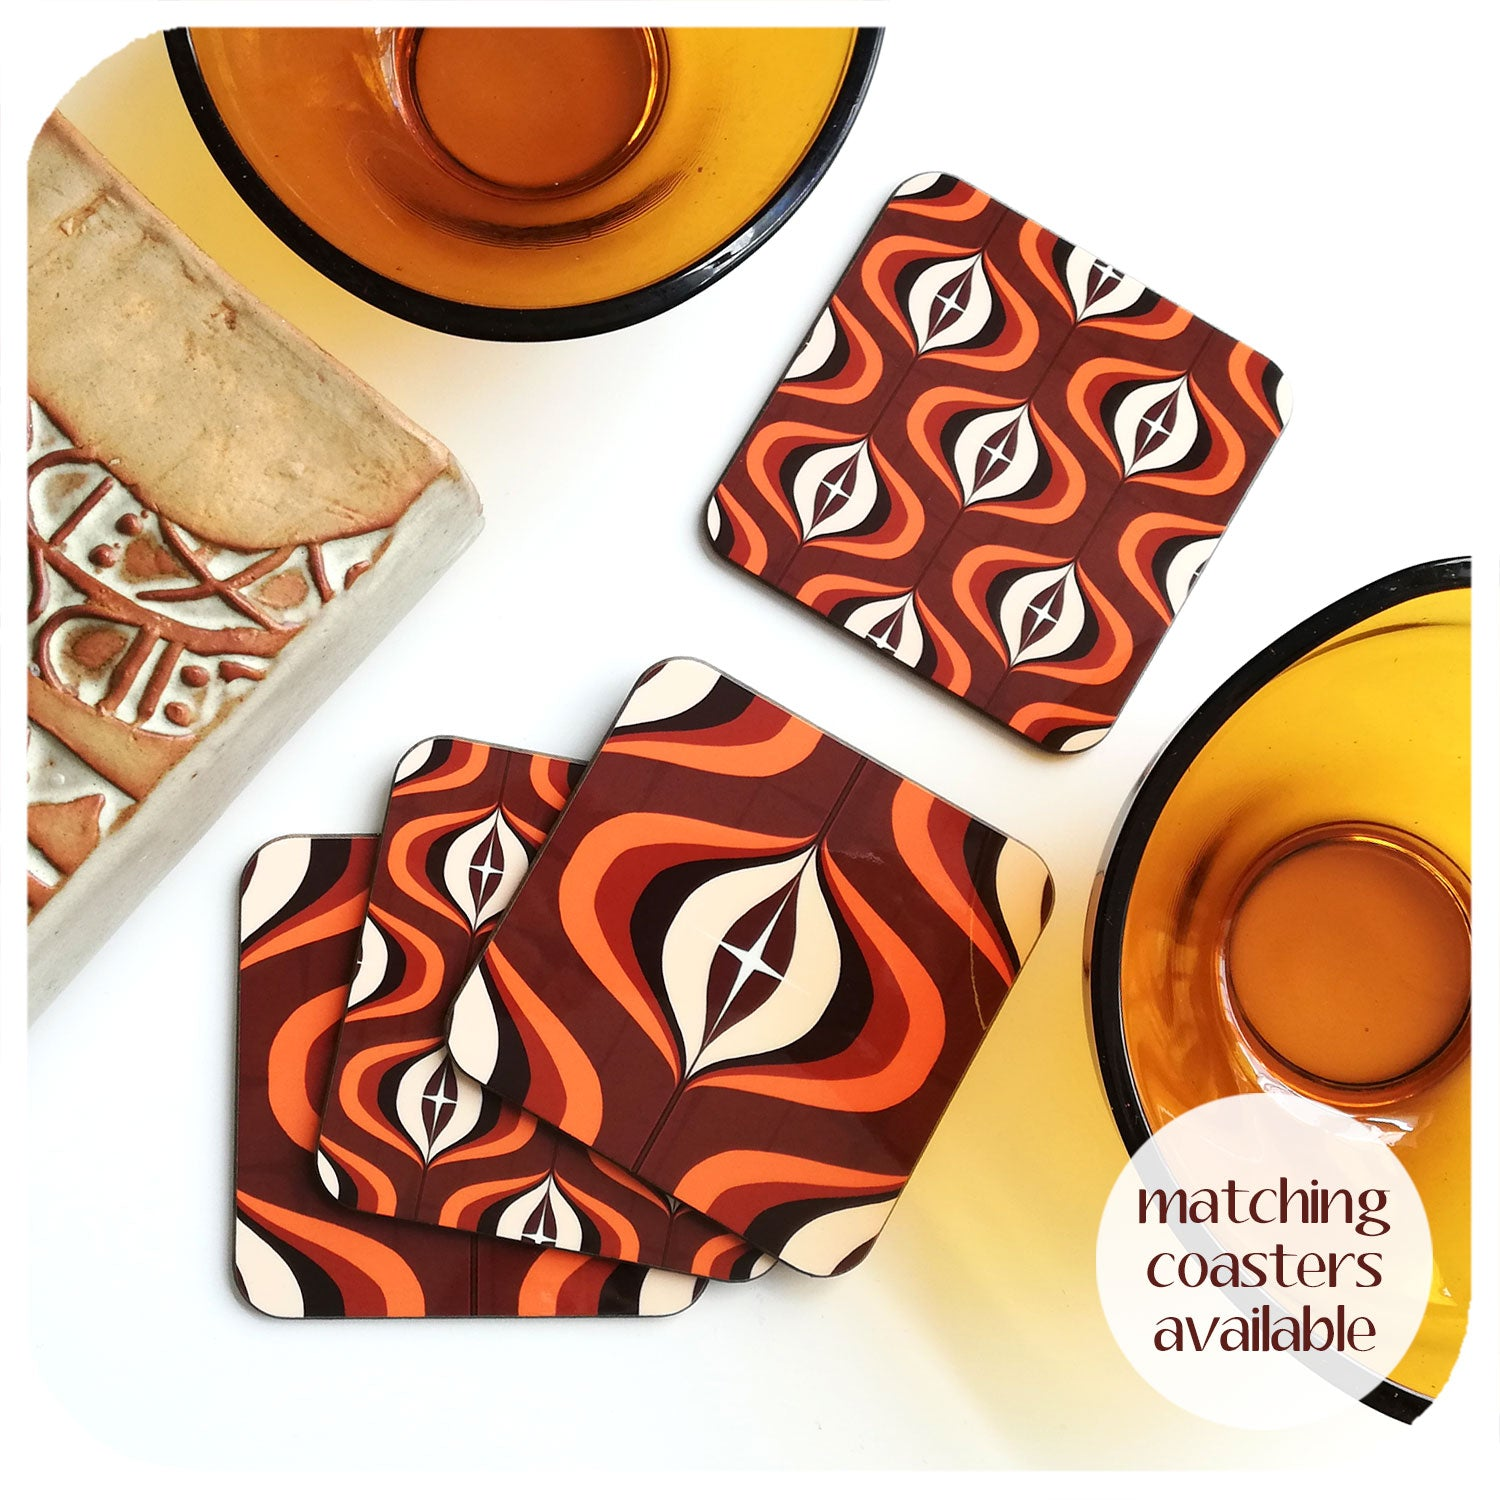 70s Style Op Art Coasters in Orange and Brown, set with vintage tableware | The Inkabilly Emporium